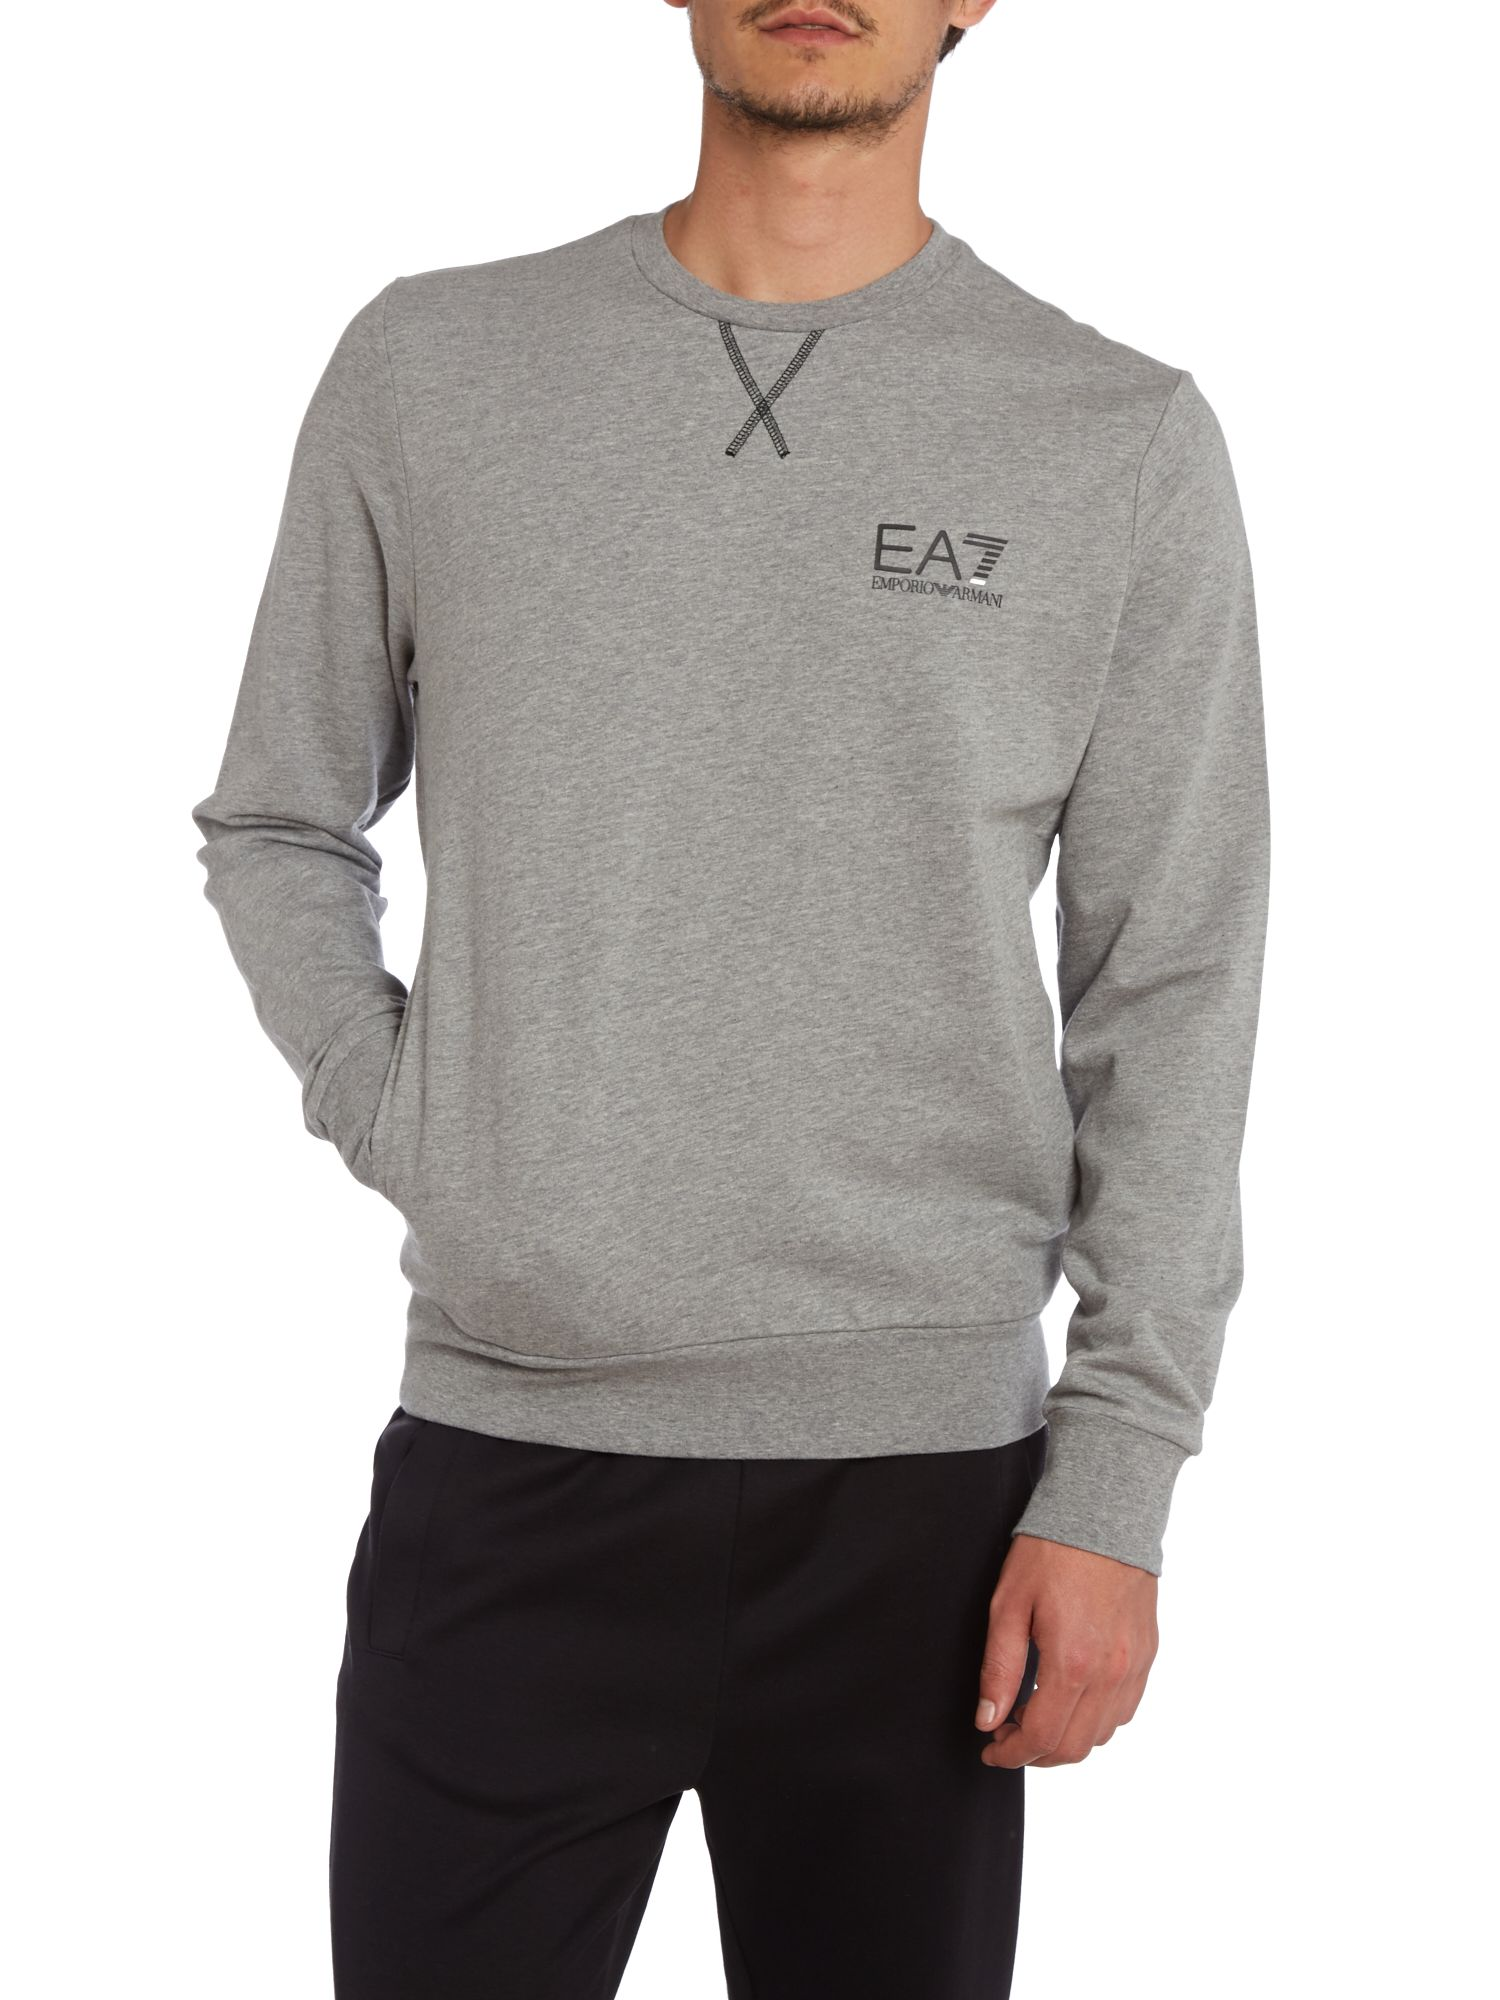 Core plain sweat top